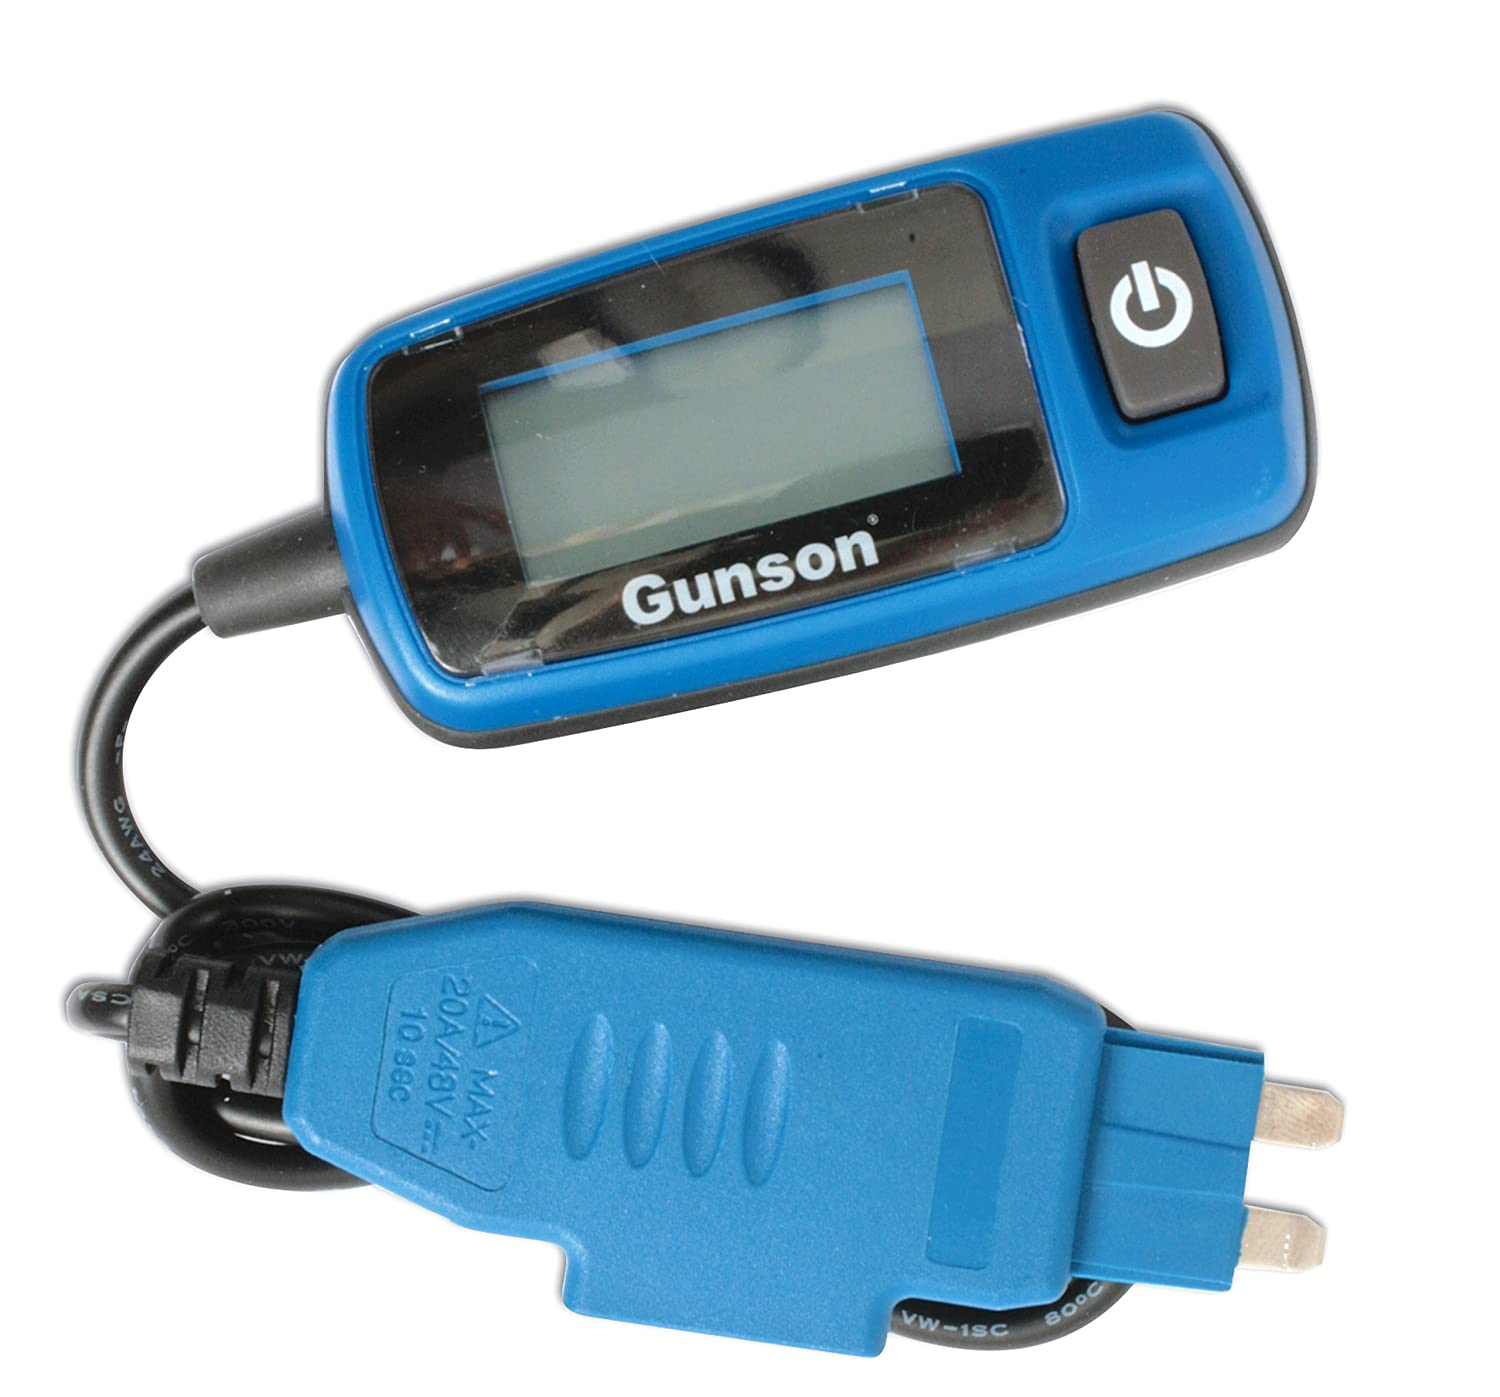 Gunson 77069 Automotive Current Tester: Amazon.co.uk: Car & Motorbike